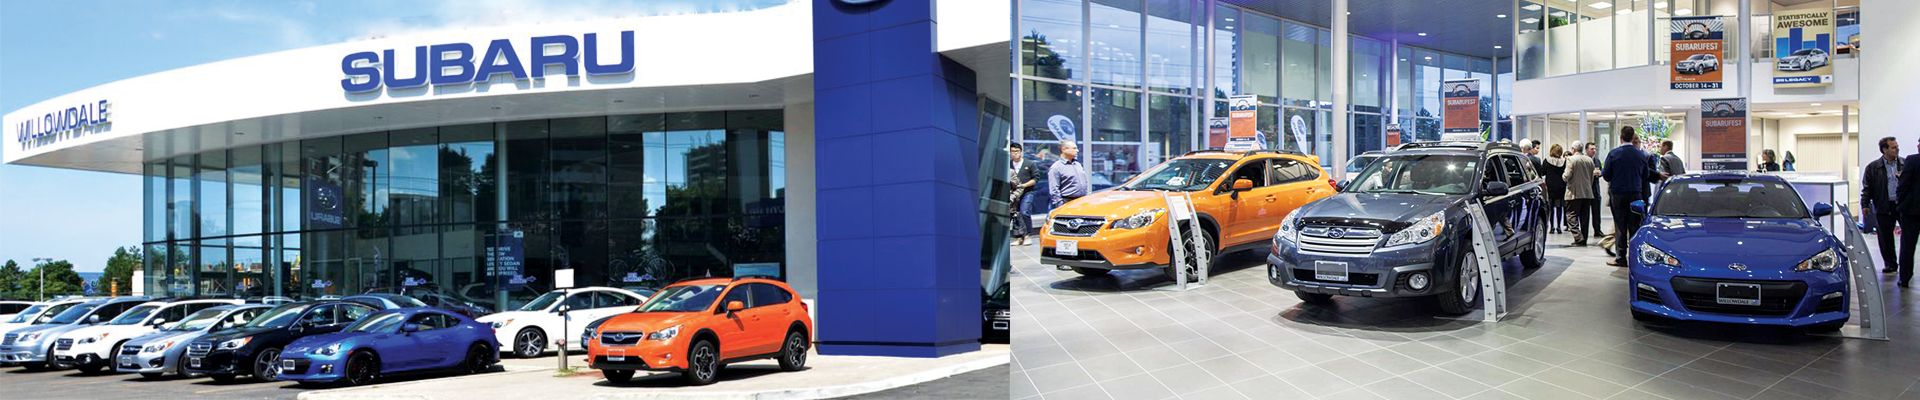 Willowdale Subaru is Toronto's Choice for The Best Subaru Service and Newest Vehicles